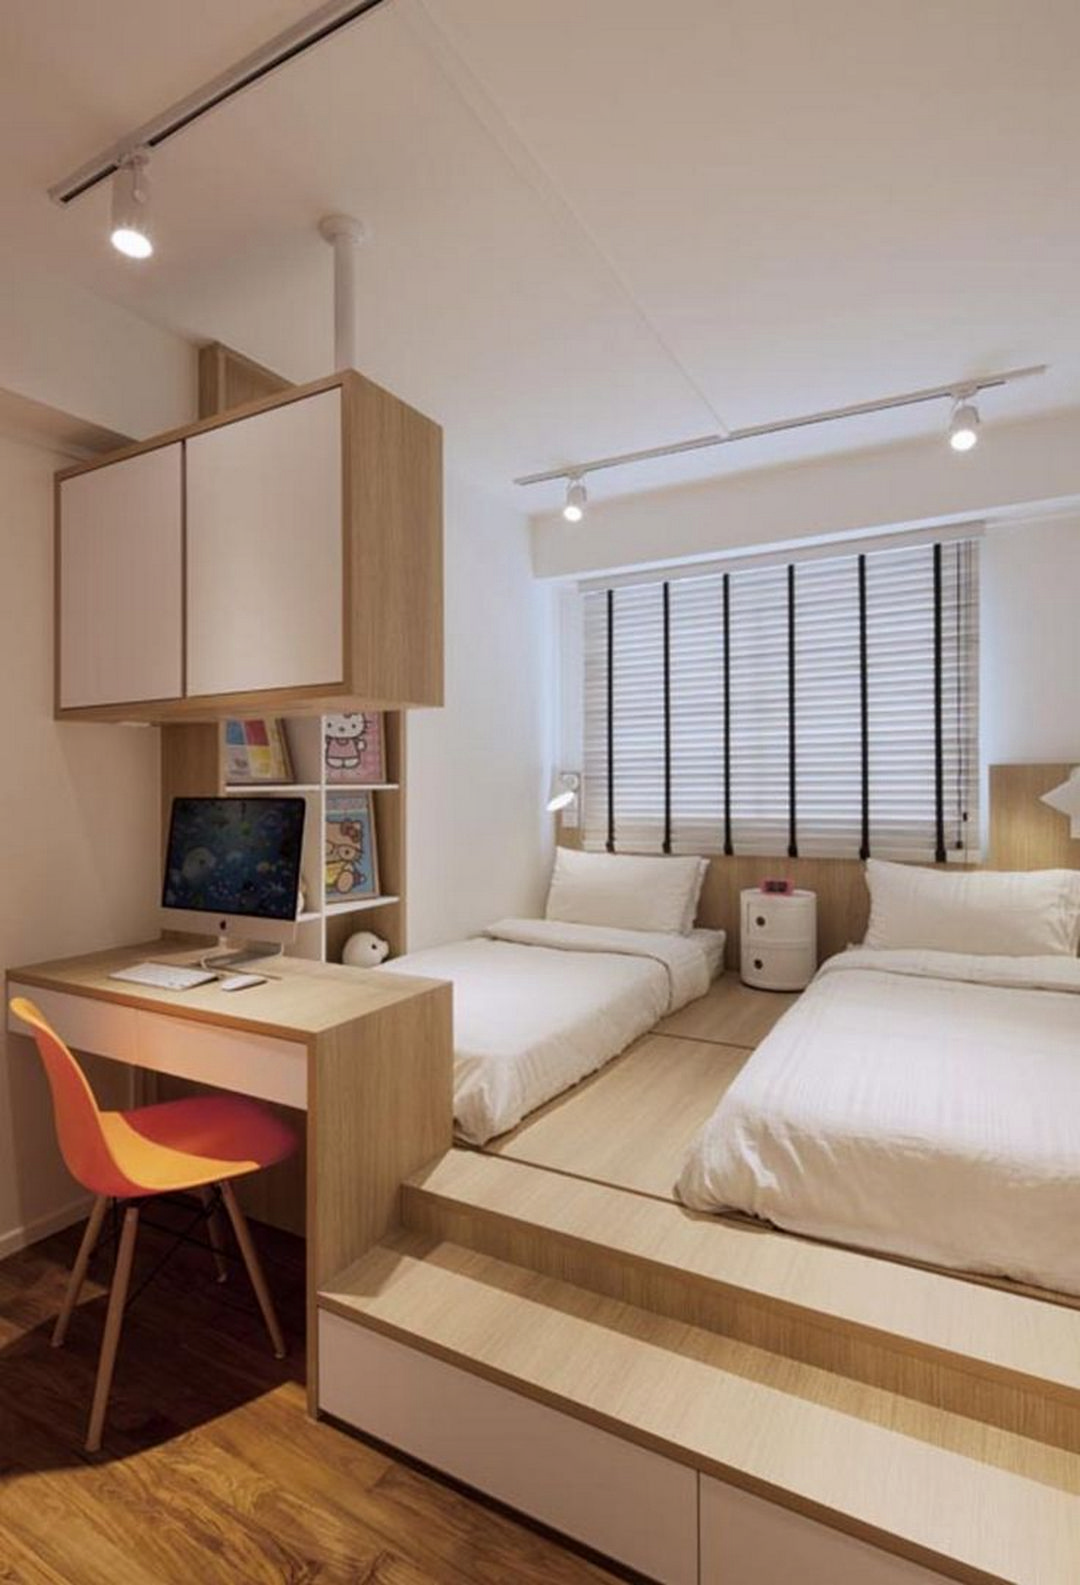 7 Home Décor Ideas For Your Living Room Bedroom Interior Small Room Design Room Design Bedroom